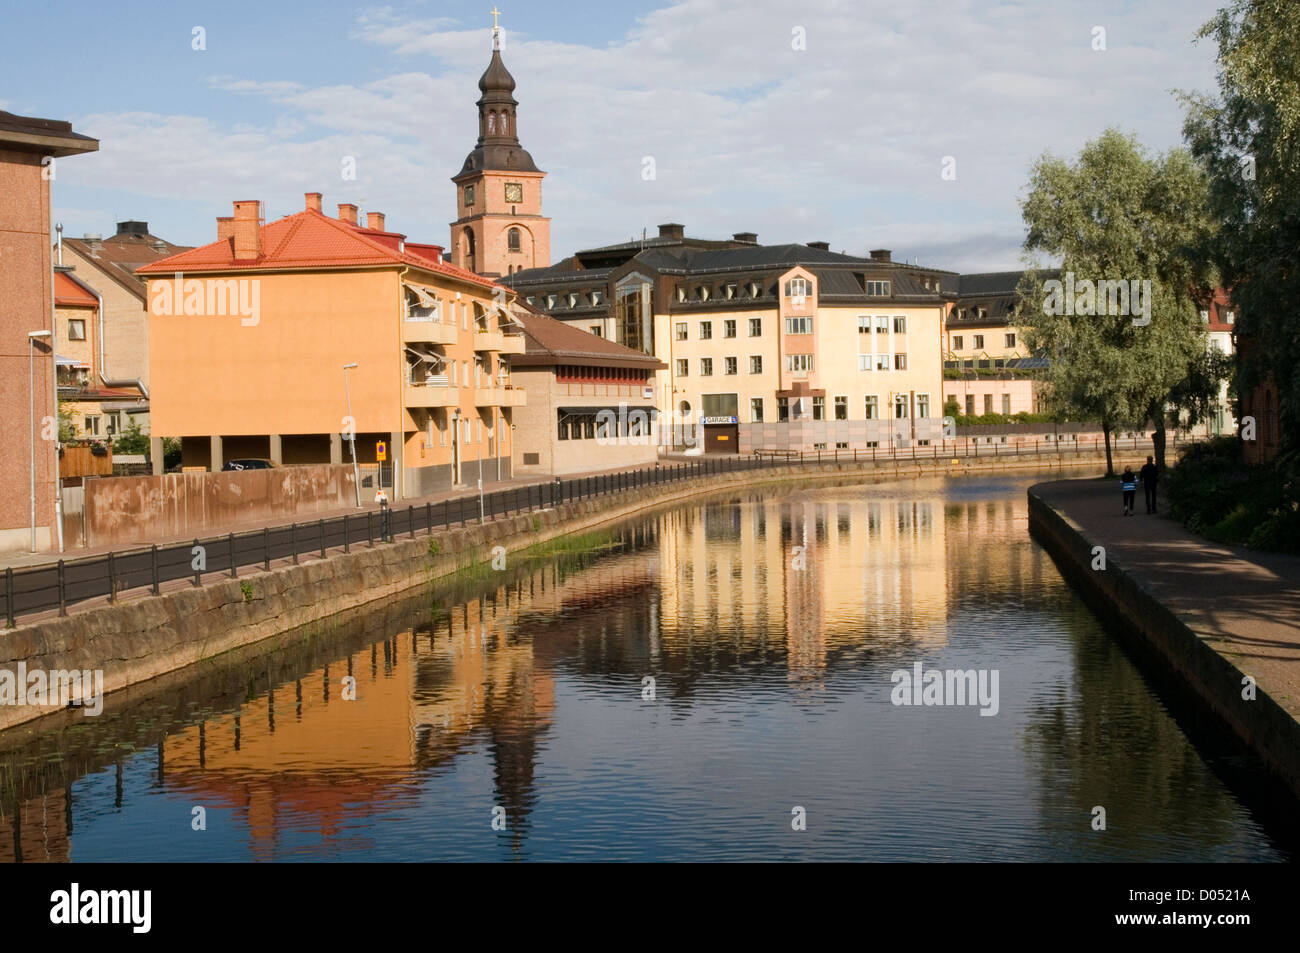 falun gemeinde in dalarna grafschaft schweden schwedische stadt stockfoto bild 51742470 alamy. Black Bedroom Furniture Sets. Home Design Ideas